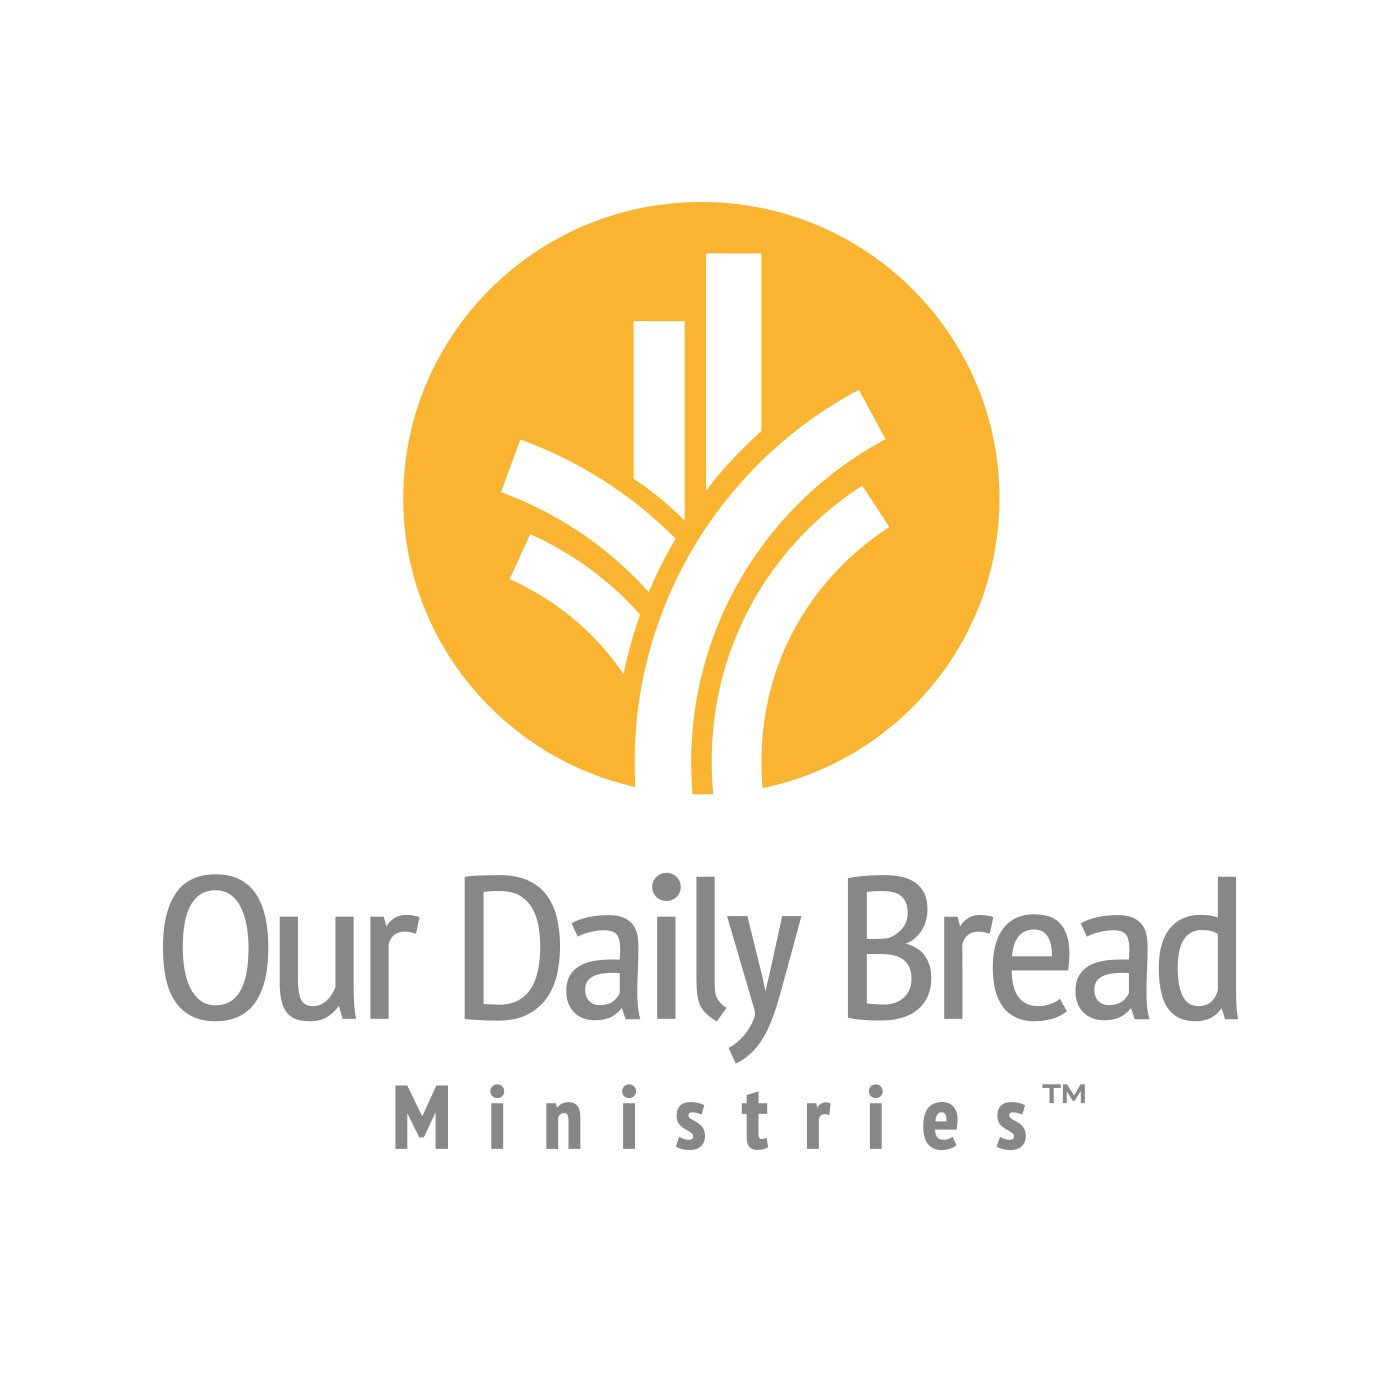 Our Daily Bread 17th January 2021, Our Daily Bread 17th January 2021 Today Devotional – The Wonderful One, Latest Nigeria News, Daily Devotionals & Celebrity Gossips - Chidispalace